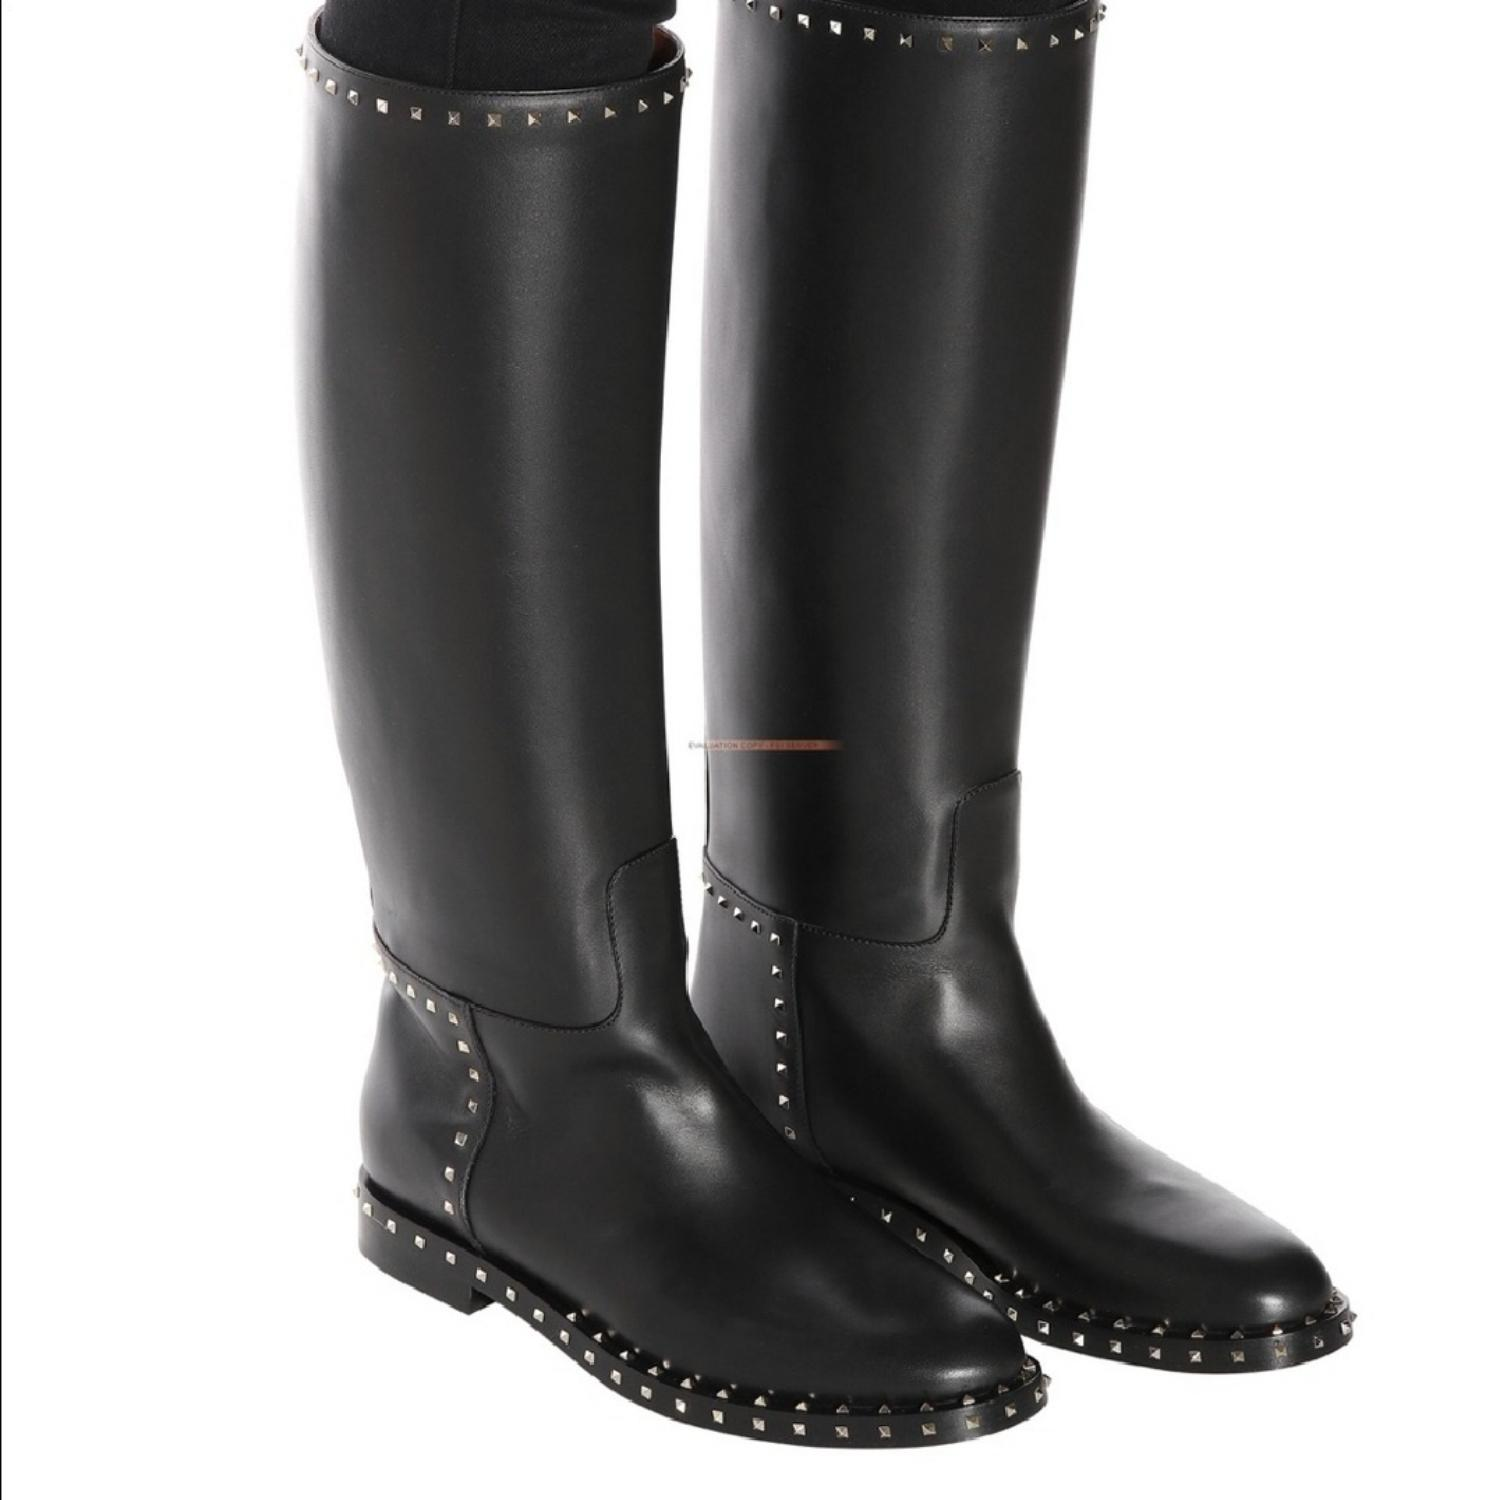 d90bc5035 US US US Valentino Black Rockstud Leather Boots Booties Size EU 38 (Approx.  US US US